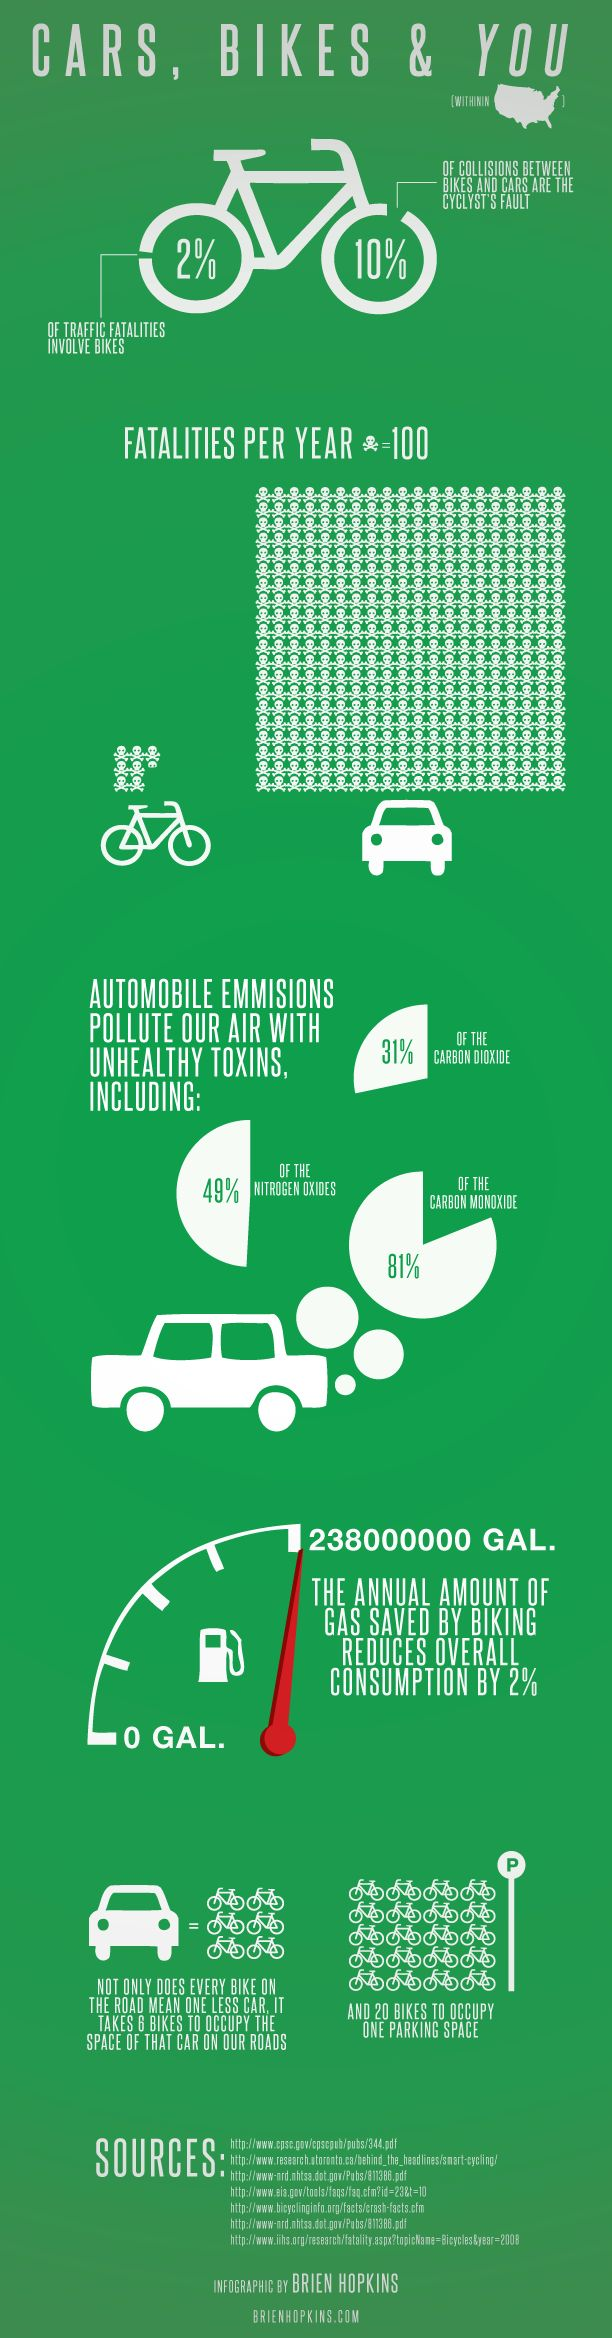 Cars, Bike & You Infographic